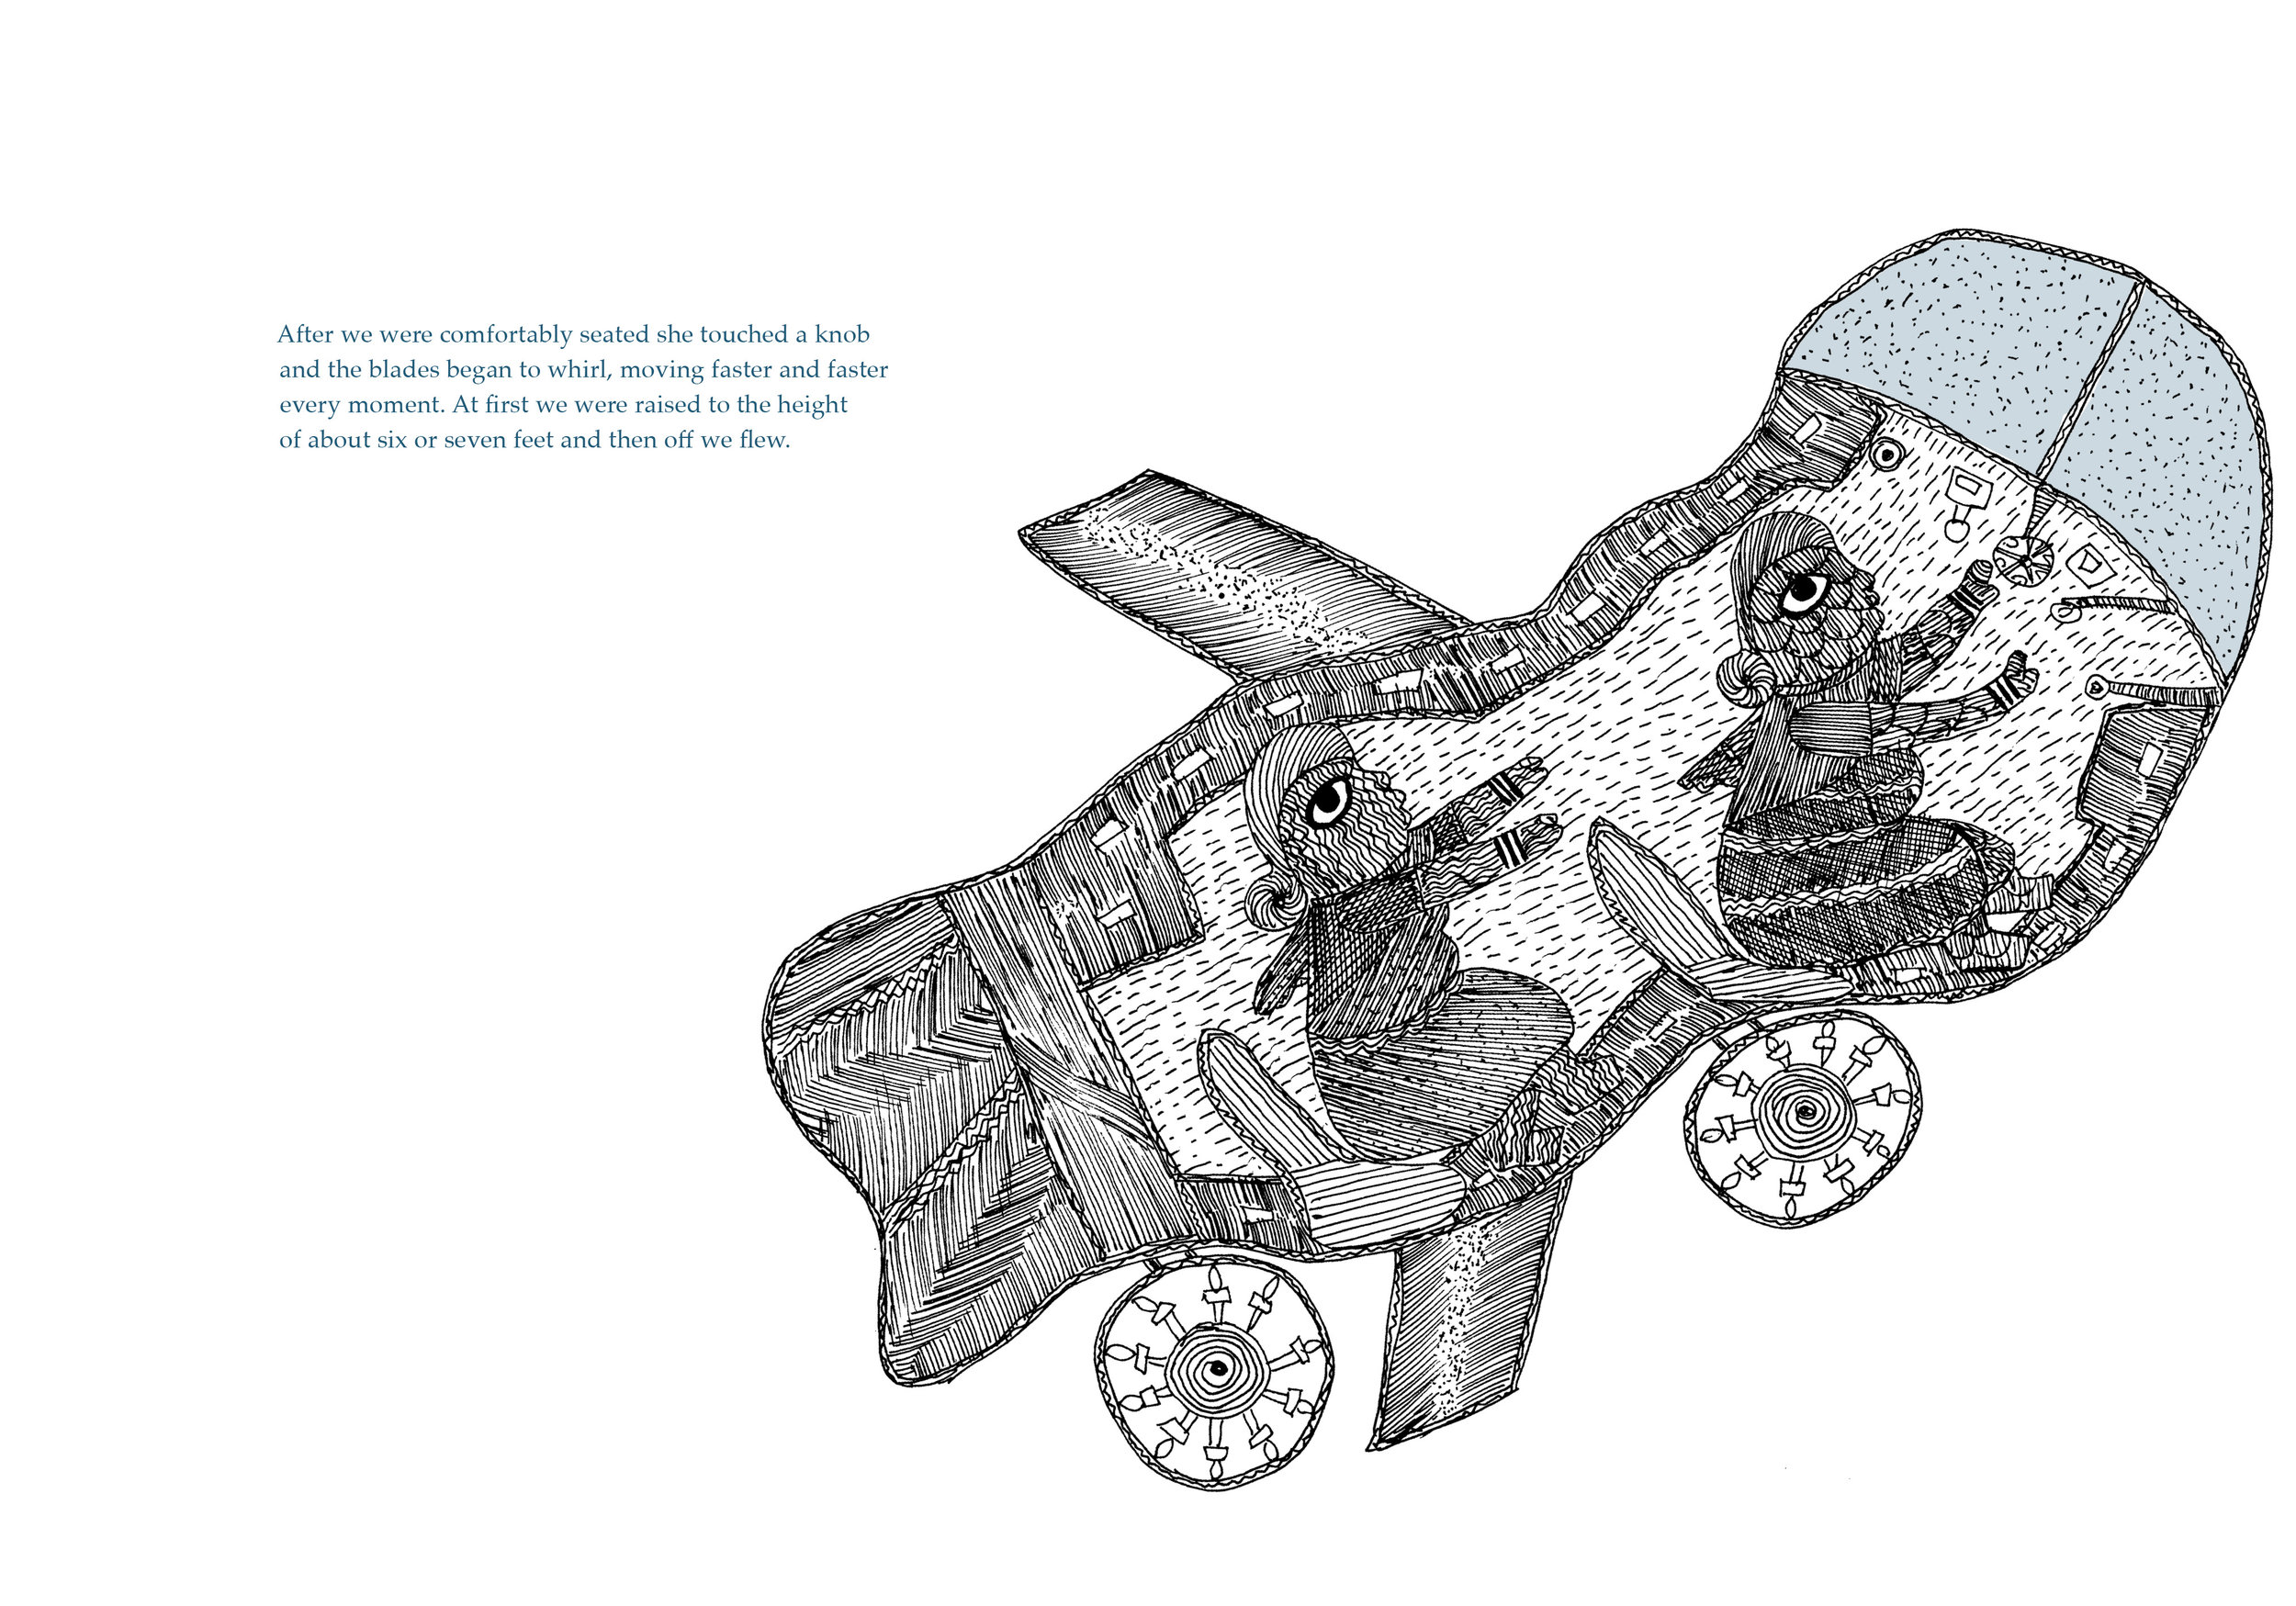 Flying Car. Text by Begum Rokheya Sakhawat Hossain and illustrations by Durga Bai for 'Sultana's Dream.' Original Edition ©️Tara Books Pvt Ltd, Chennai, India  www.tarabooks.com .